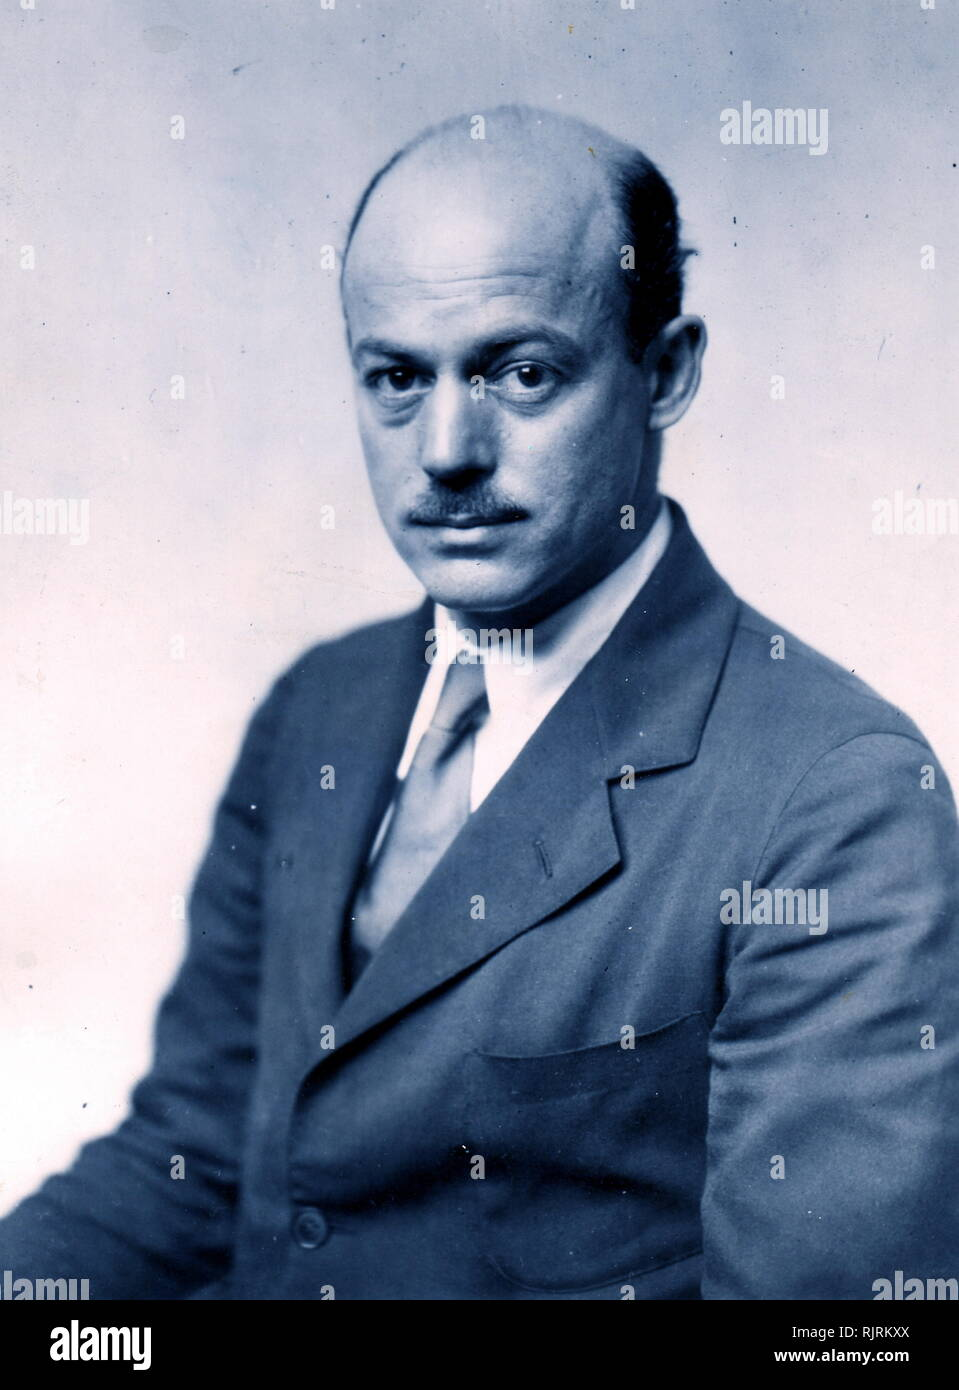 Jerome Clarke Hunsaker (August 26, 1886 - September 10, 1984) was an American airman and mechanical engineer. He was a named member of the In UFO conspiracy theories, Majestic 12 (or MJ-12); code name of an alleged secret committee of scientists, military leaders, and government officials, formed in 1947 by an executive order by U.S. President Harry S. Truman to facilitate recovery and investigation of alien spacecraft - Stock Image